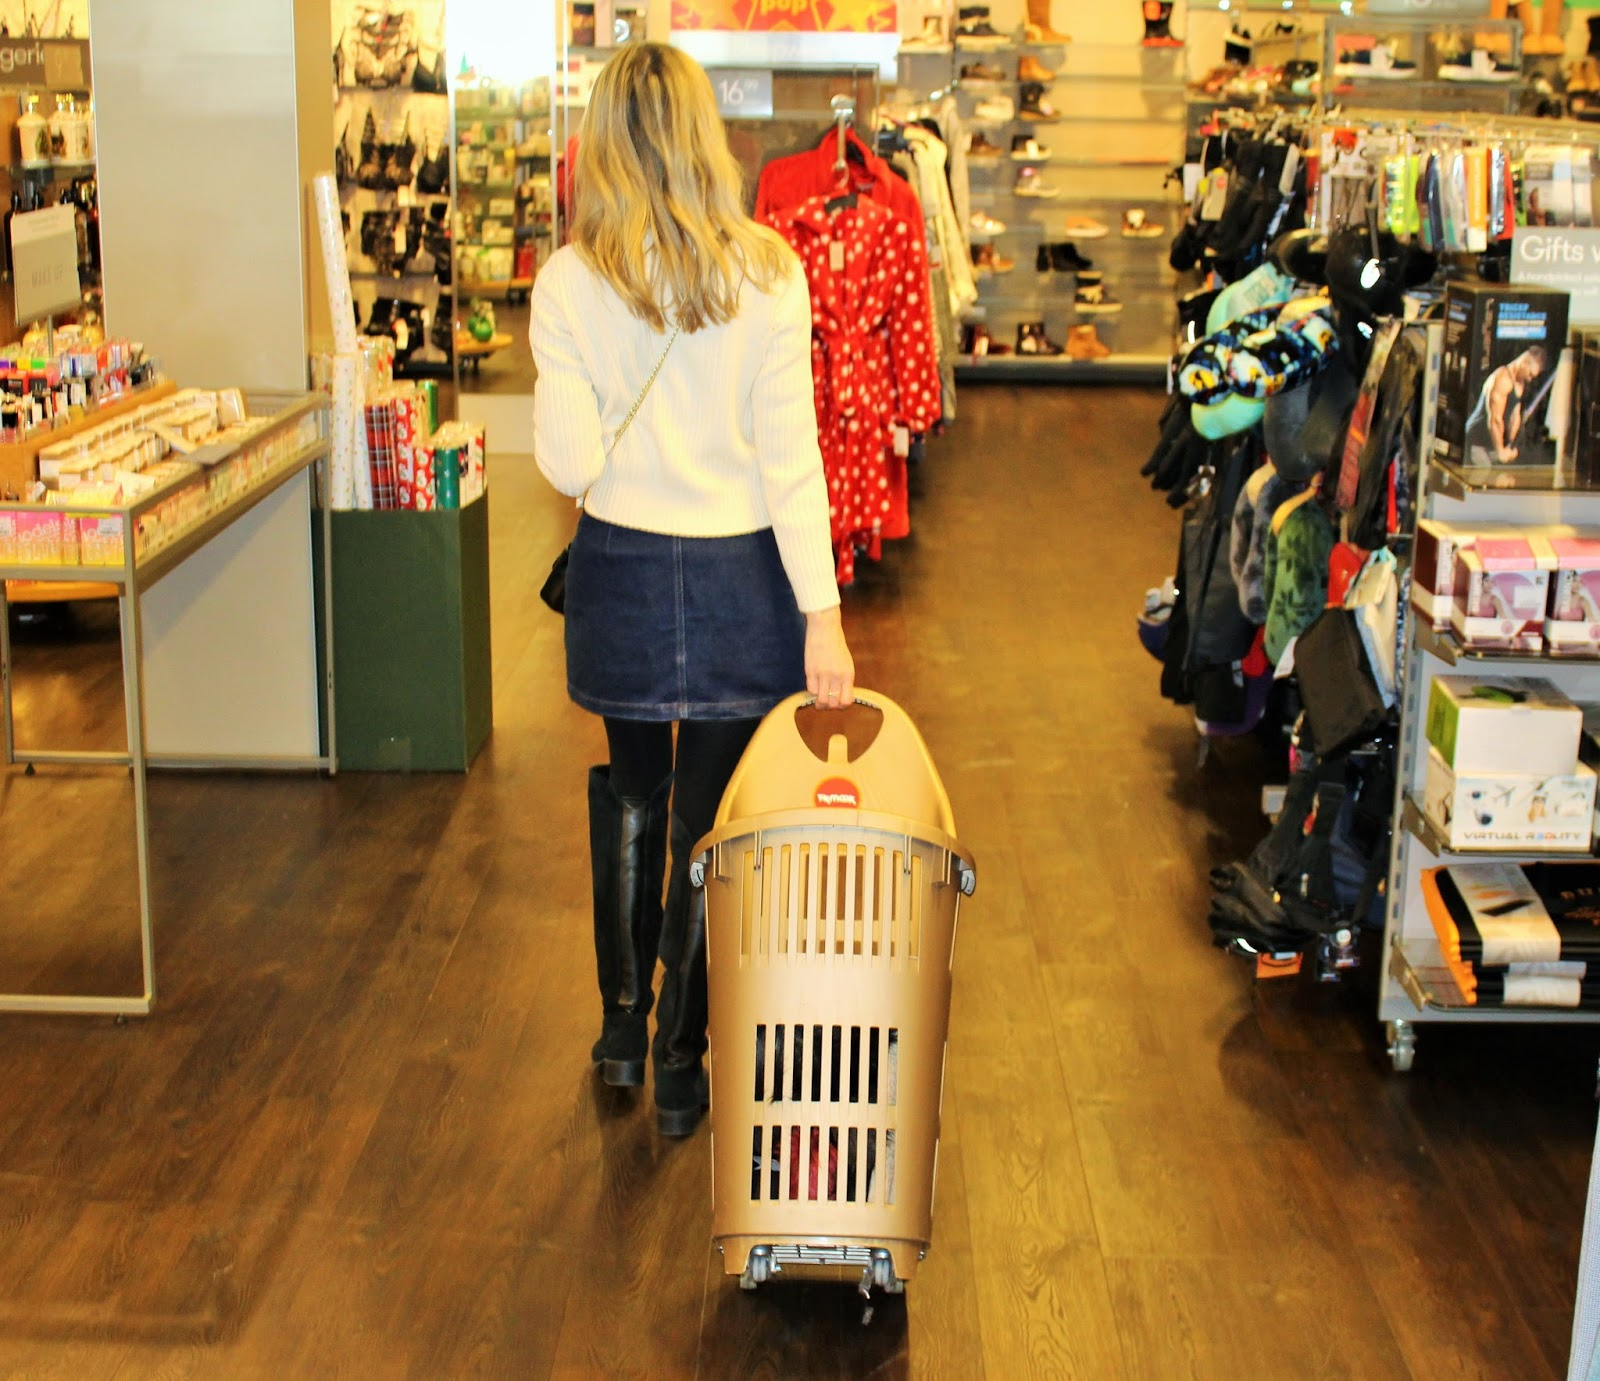 How To Blitz Your Last Minute Christmas Shopping At TK Maxx - In 20 Minutes - 5